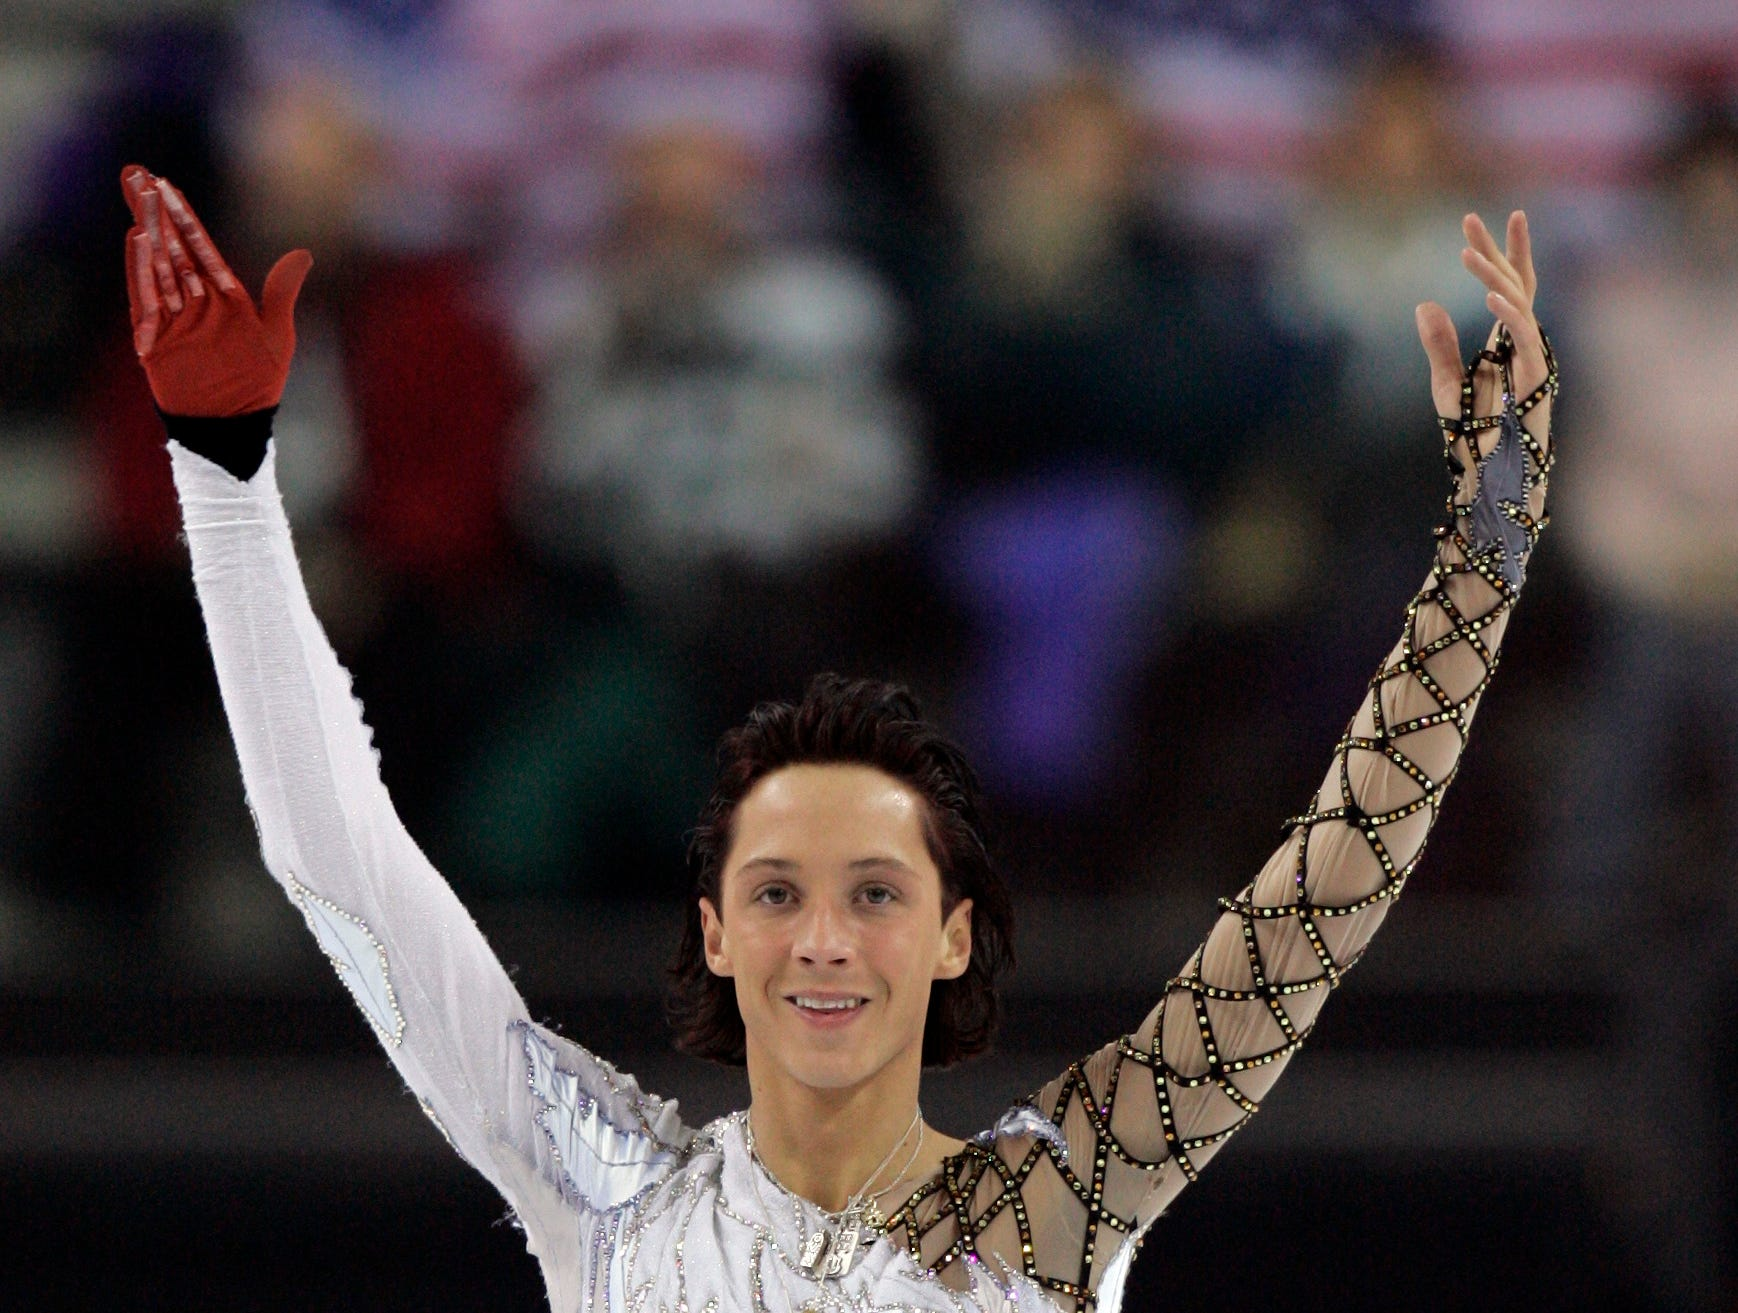 United States' Johnny Weir waves to spectators following his performance at the Men's Figure Skating short program at the Turin 2006 Winter Olympic Games in Turin, Italy, Tuesday, Feb. 14, 2006.